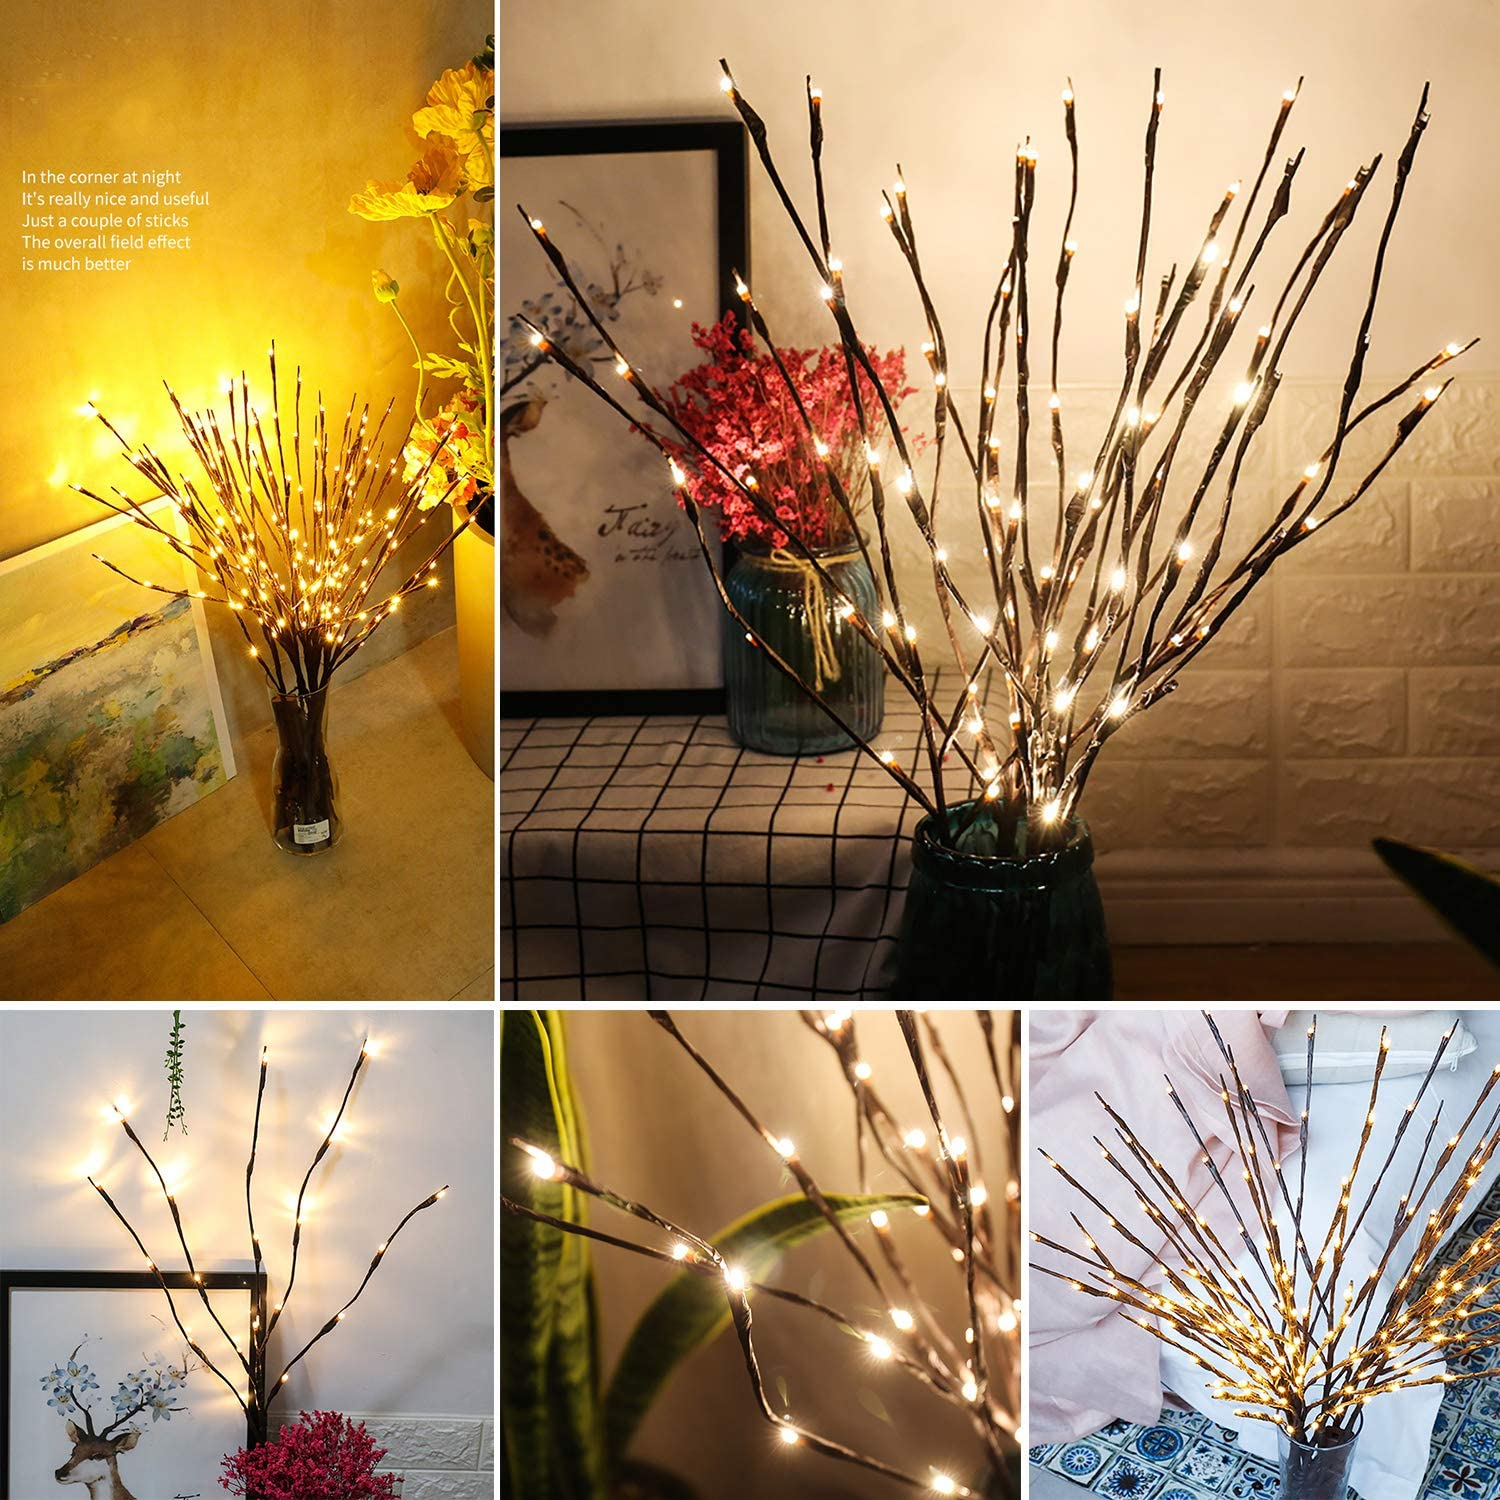 2 Pack Branch Decorative Lights Tall Vase Filler Willow Twig For Home Warm White